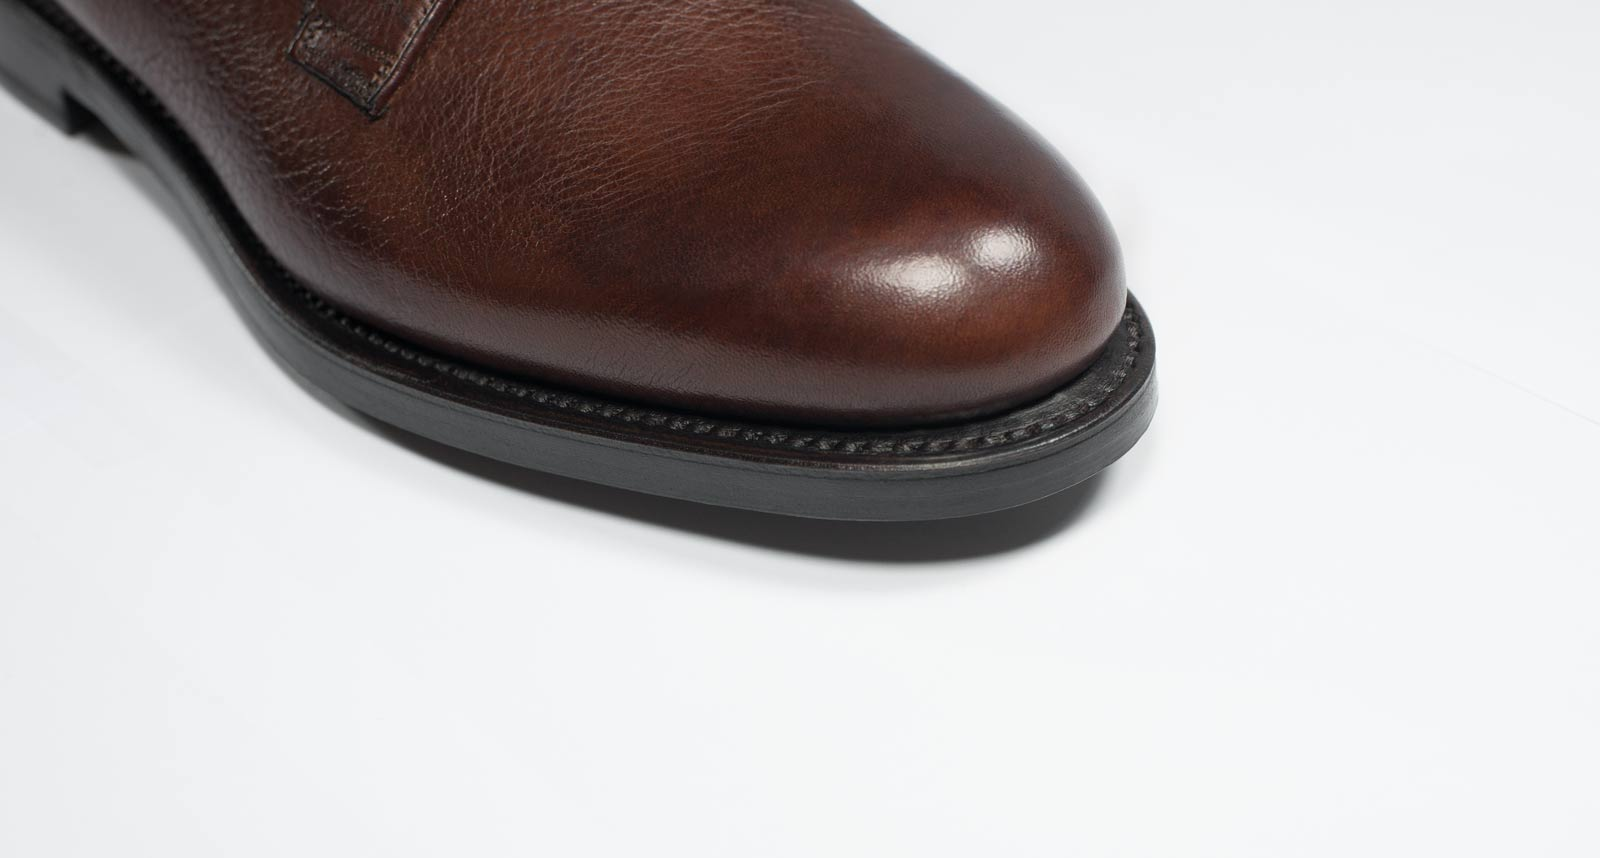 Goodyear welted seams - Men's shoe